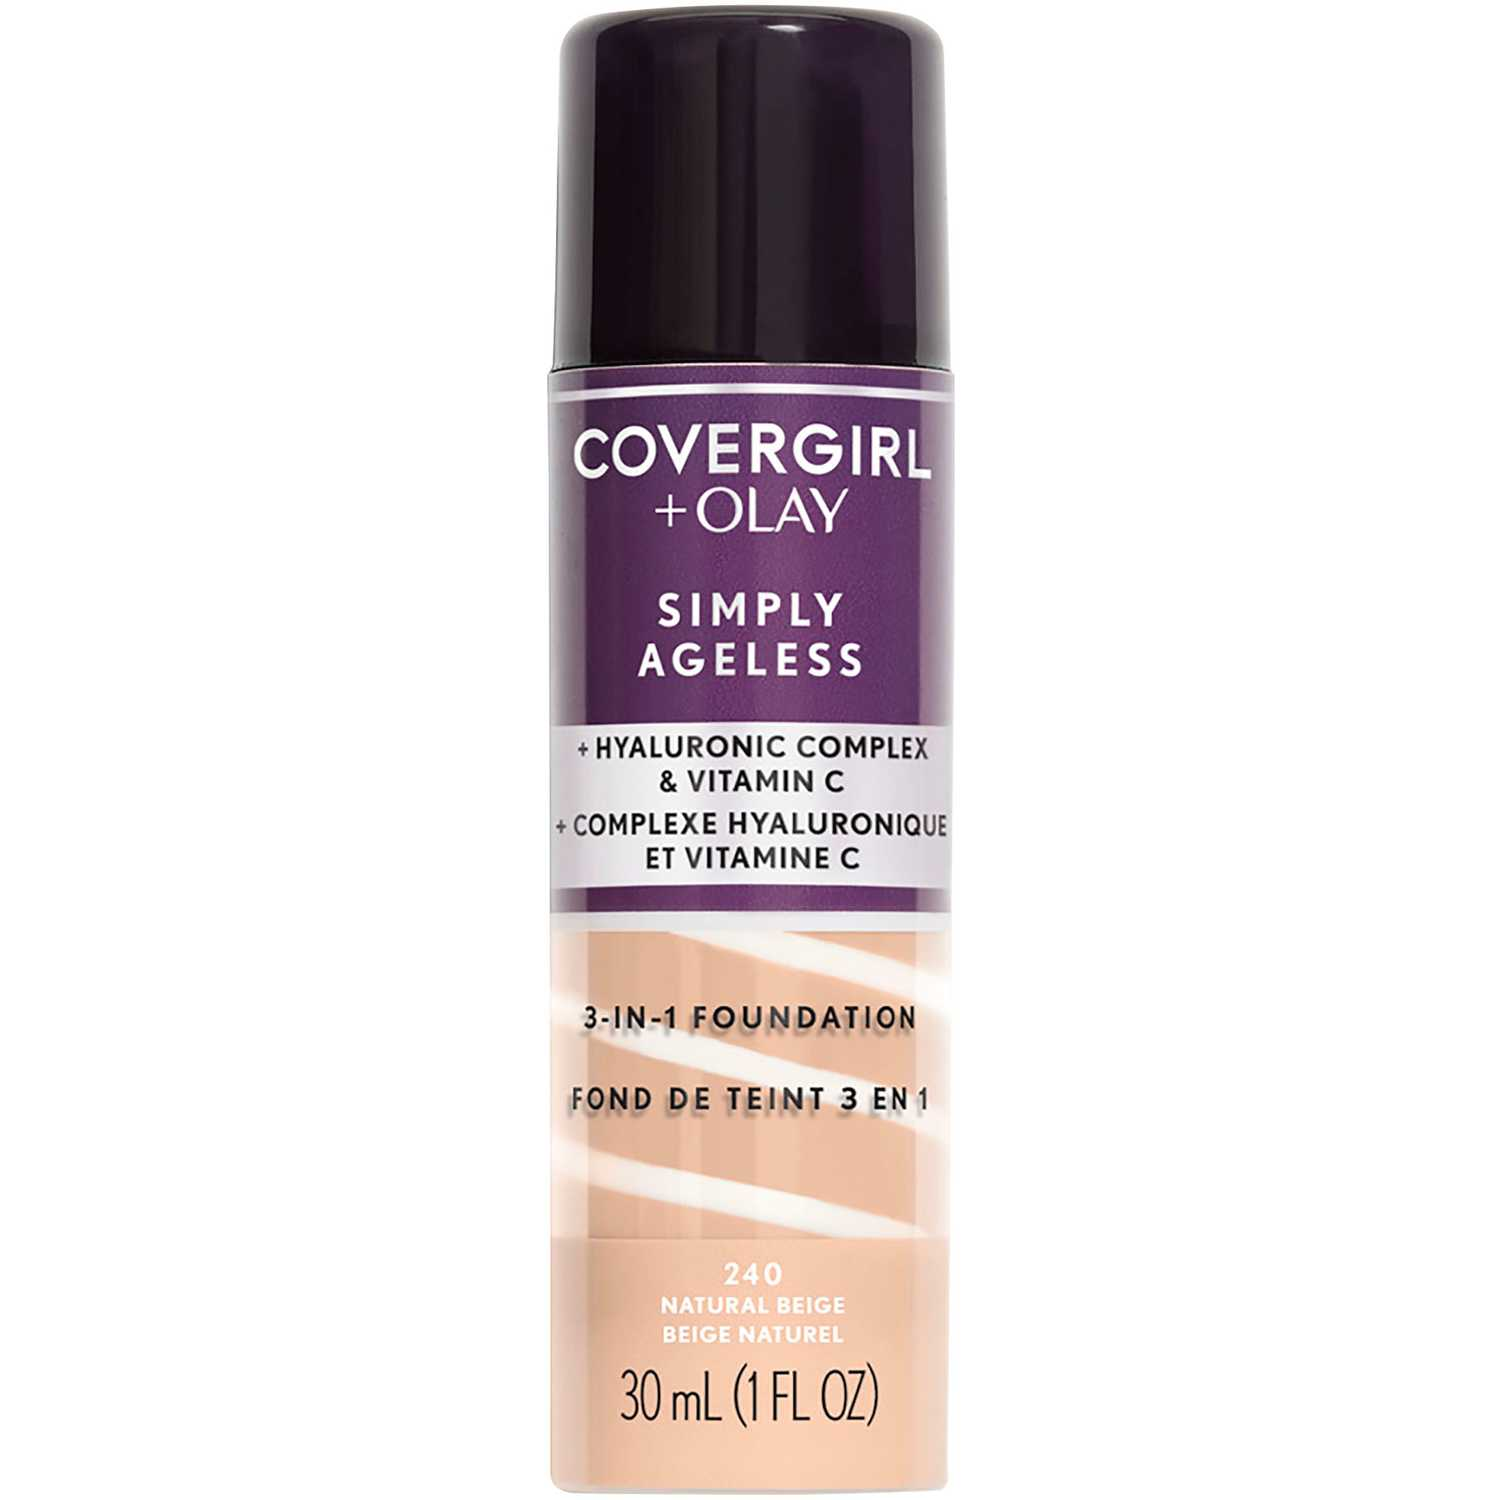 Covergirl olay base simply ageless 3n1 Natural Beige Fundación